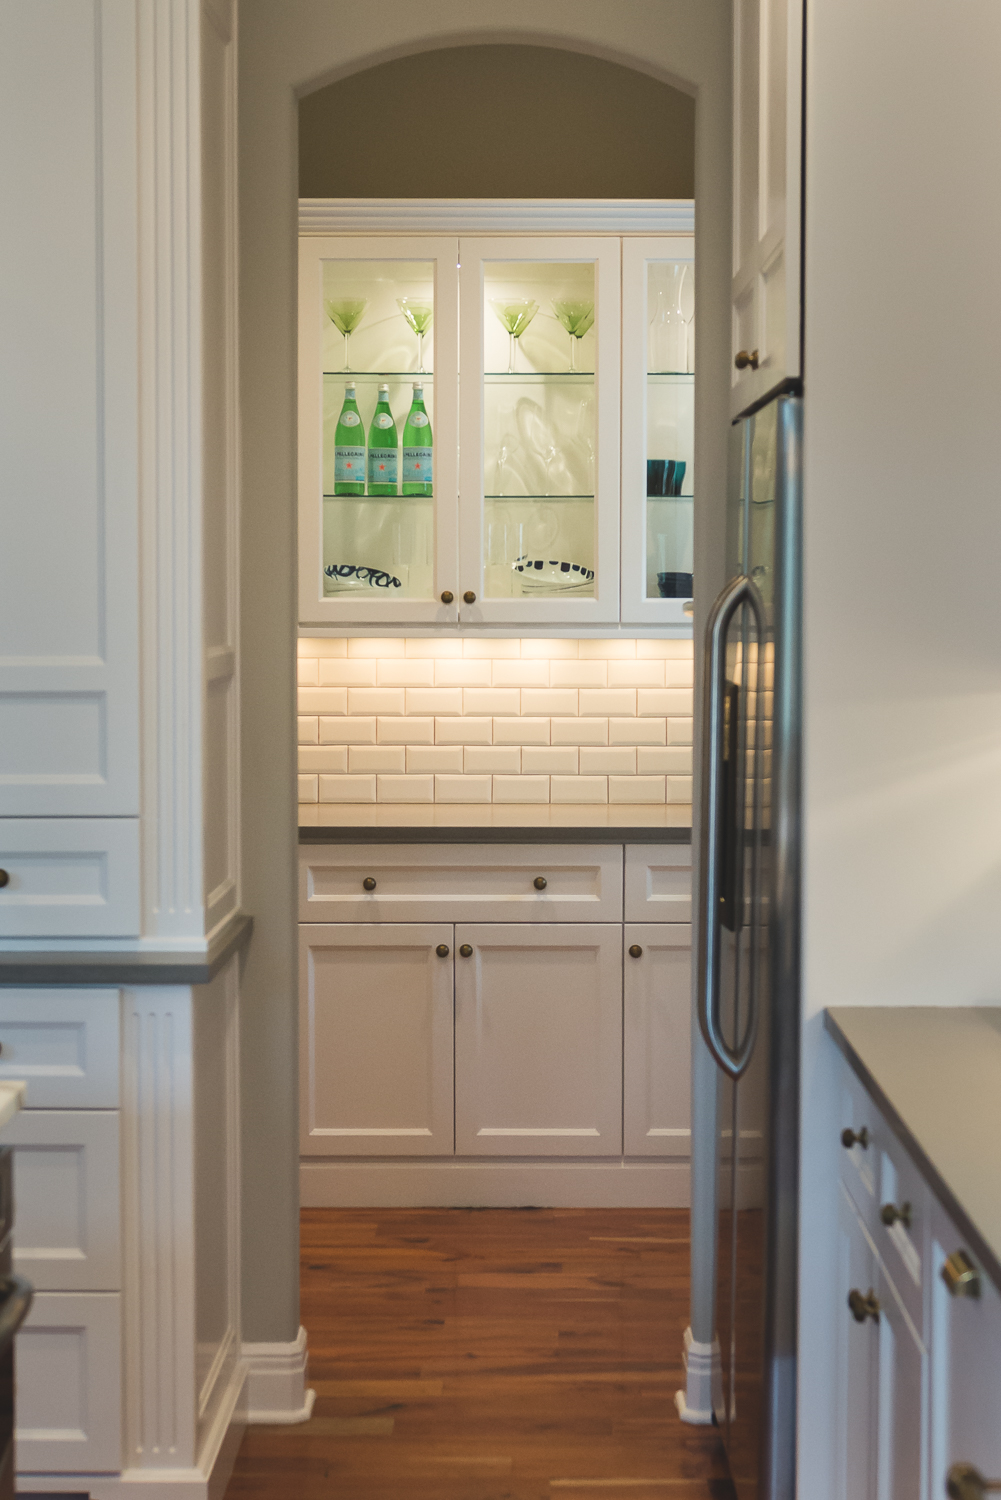 The remodel extended into the butler's pantry. www.saranobledesigns.com